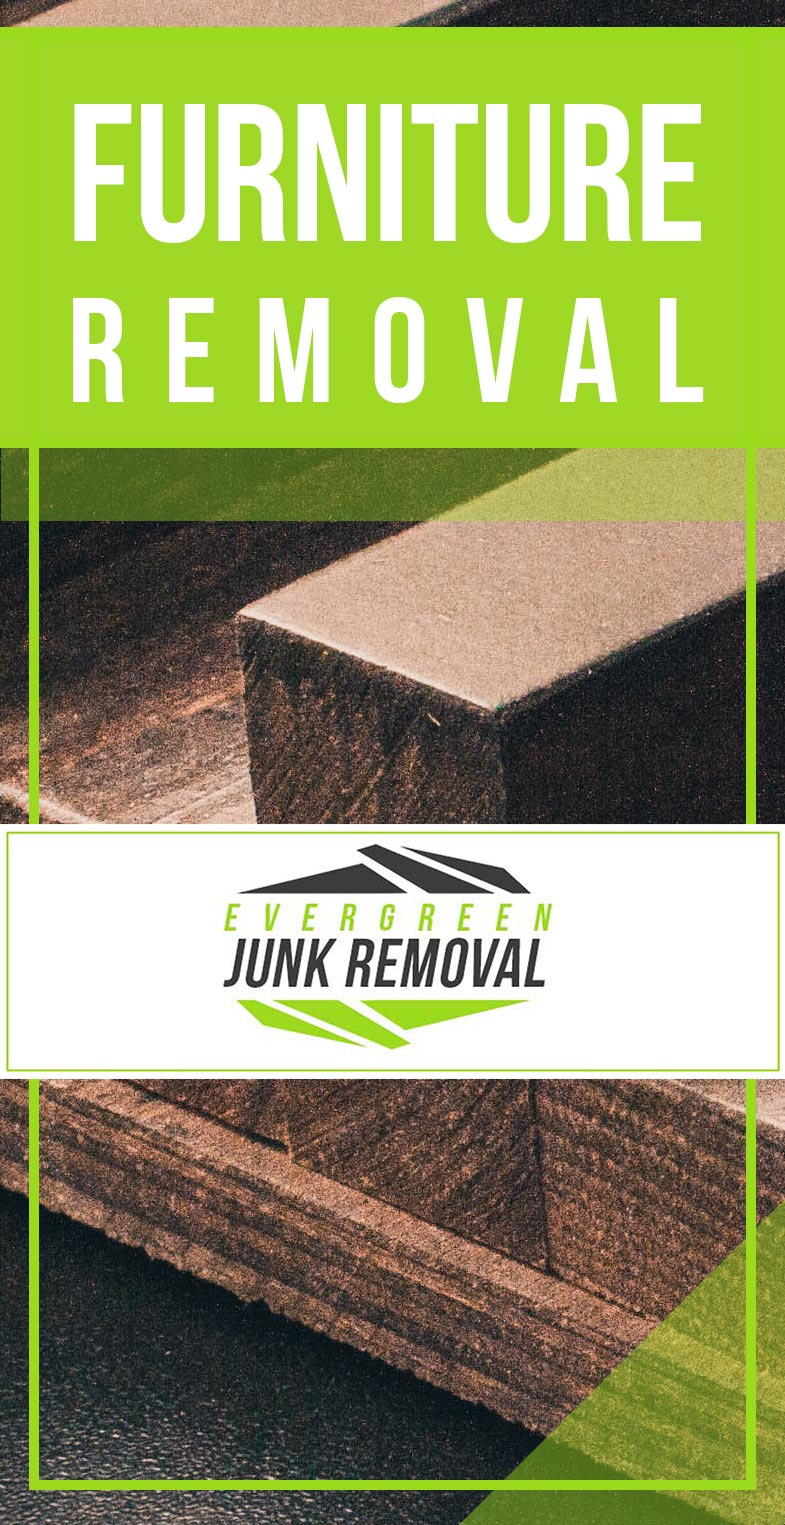 Junk Removal Juno Beach Furniture Removal